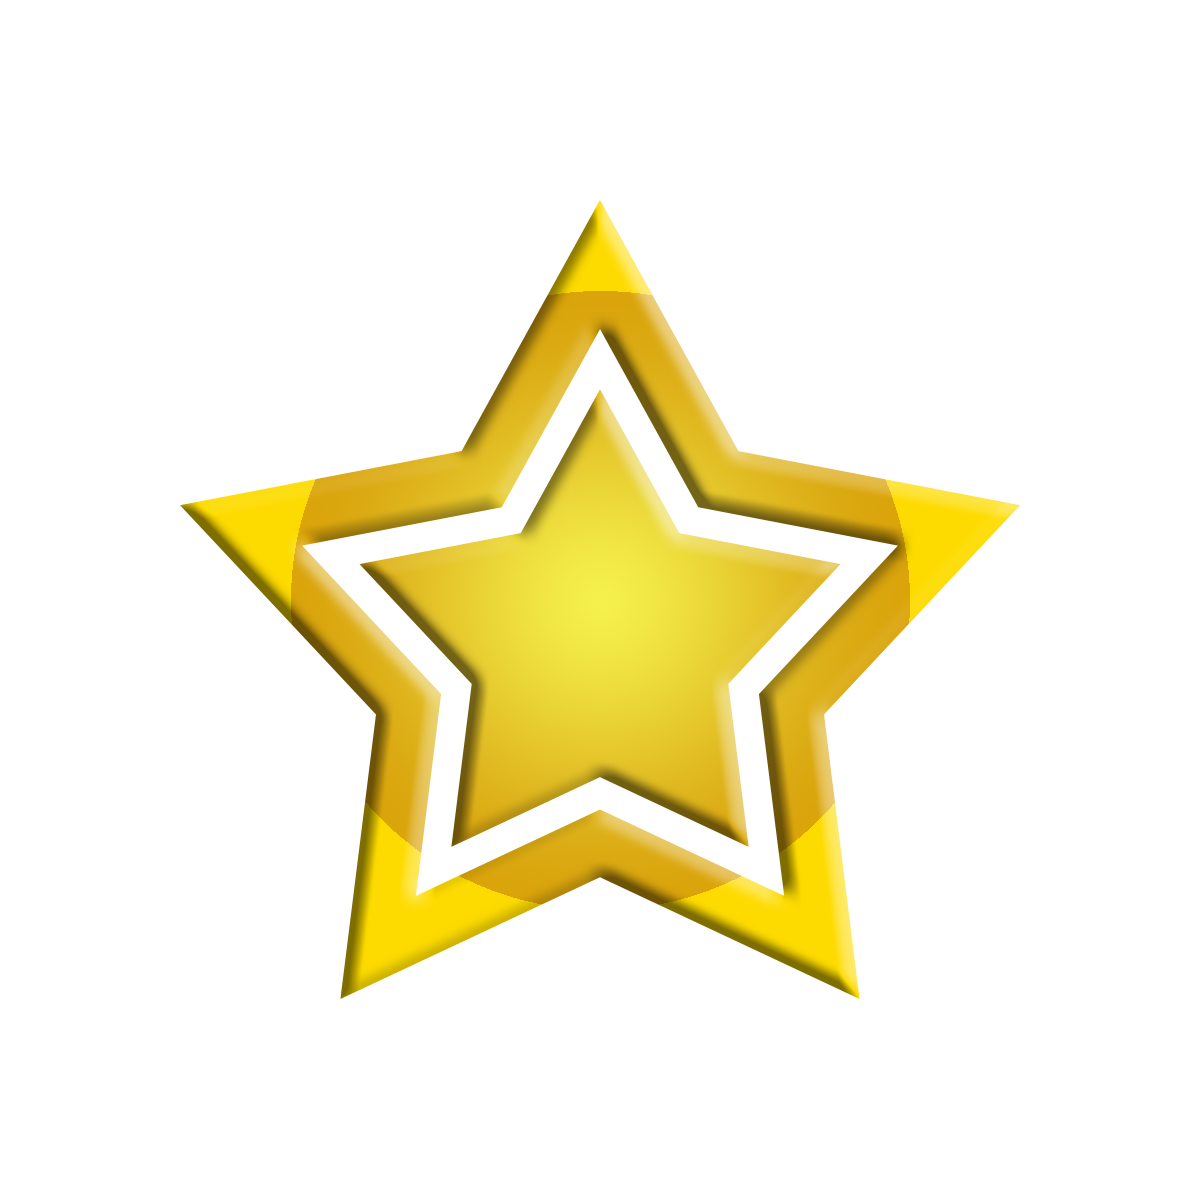 Free Download High Quality Star Transparent Png Without Background Image Its A Good Quality Stylish Star Transparent Png Image Png Png Icons Youtube Thumbnail